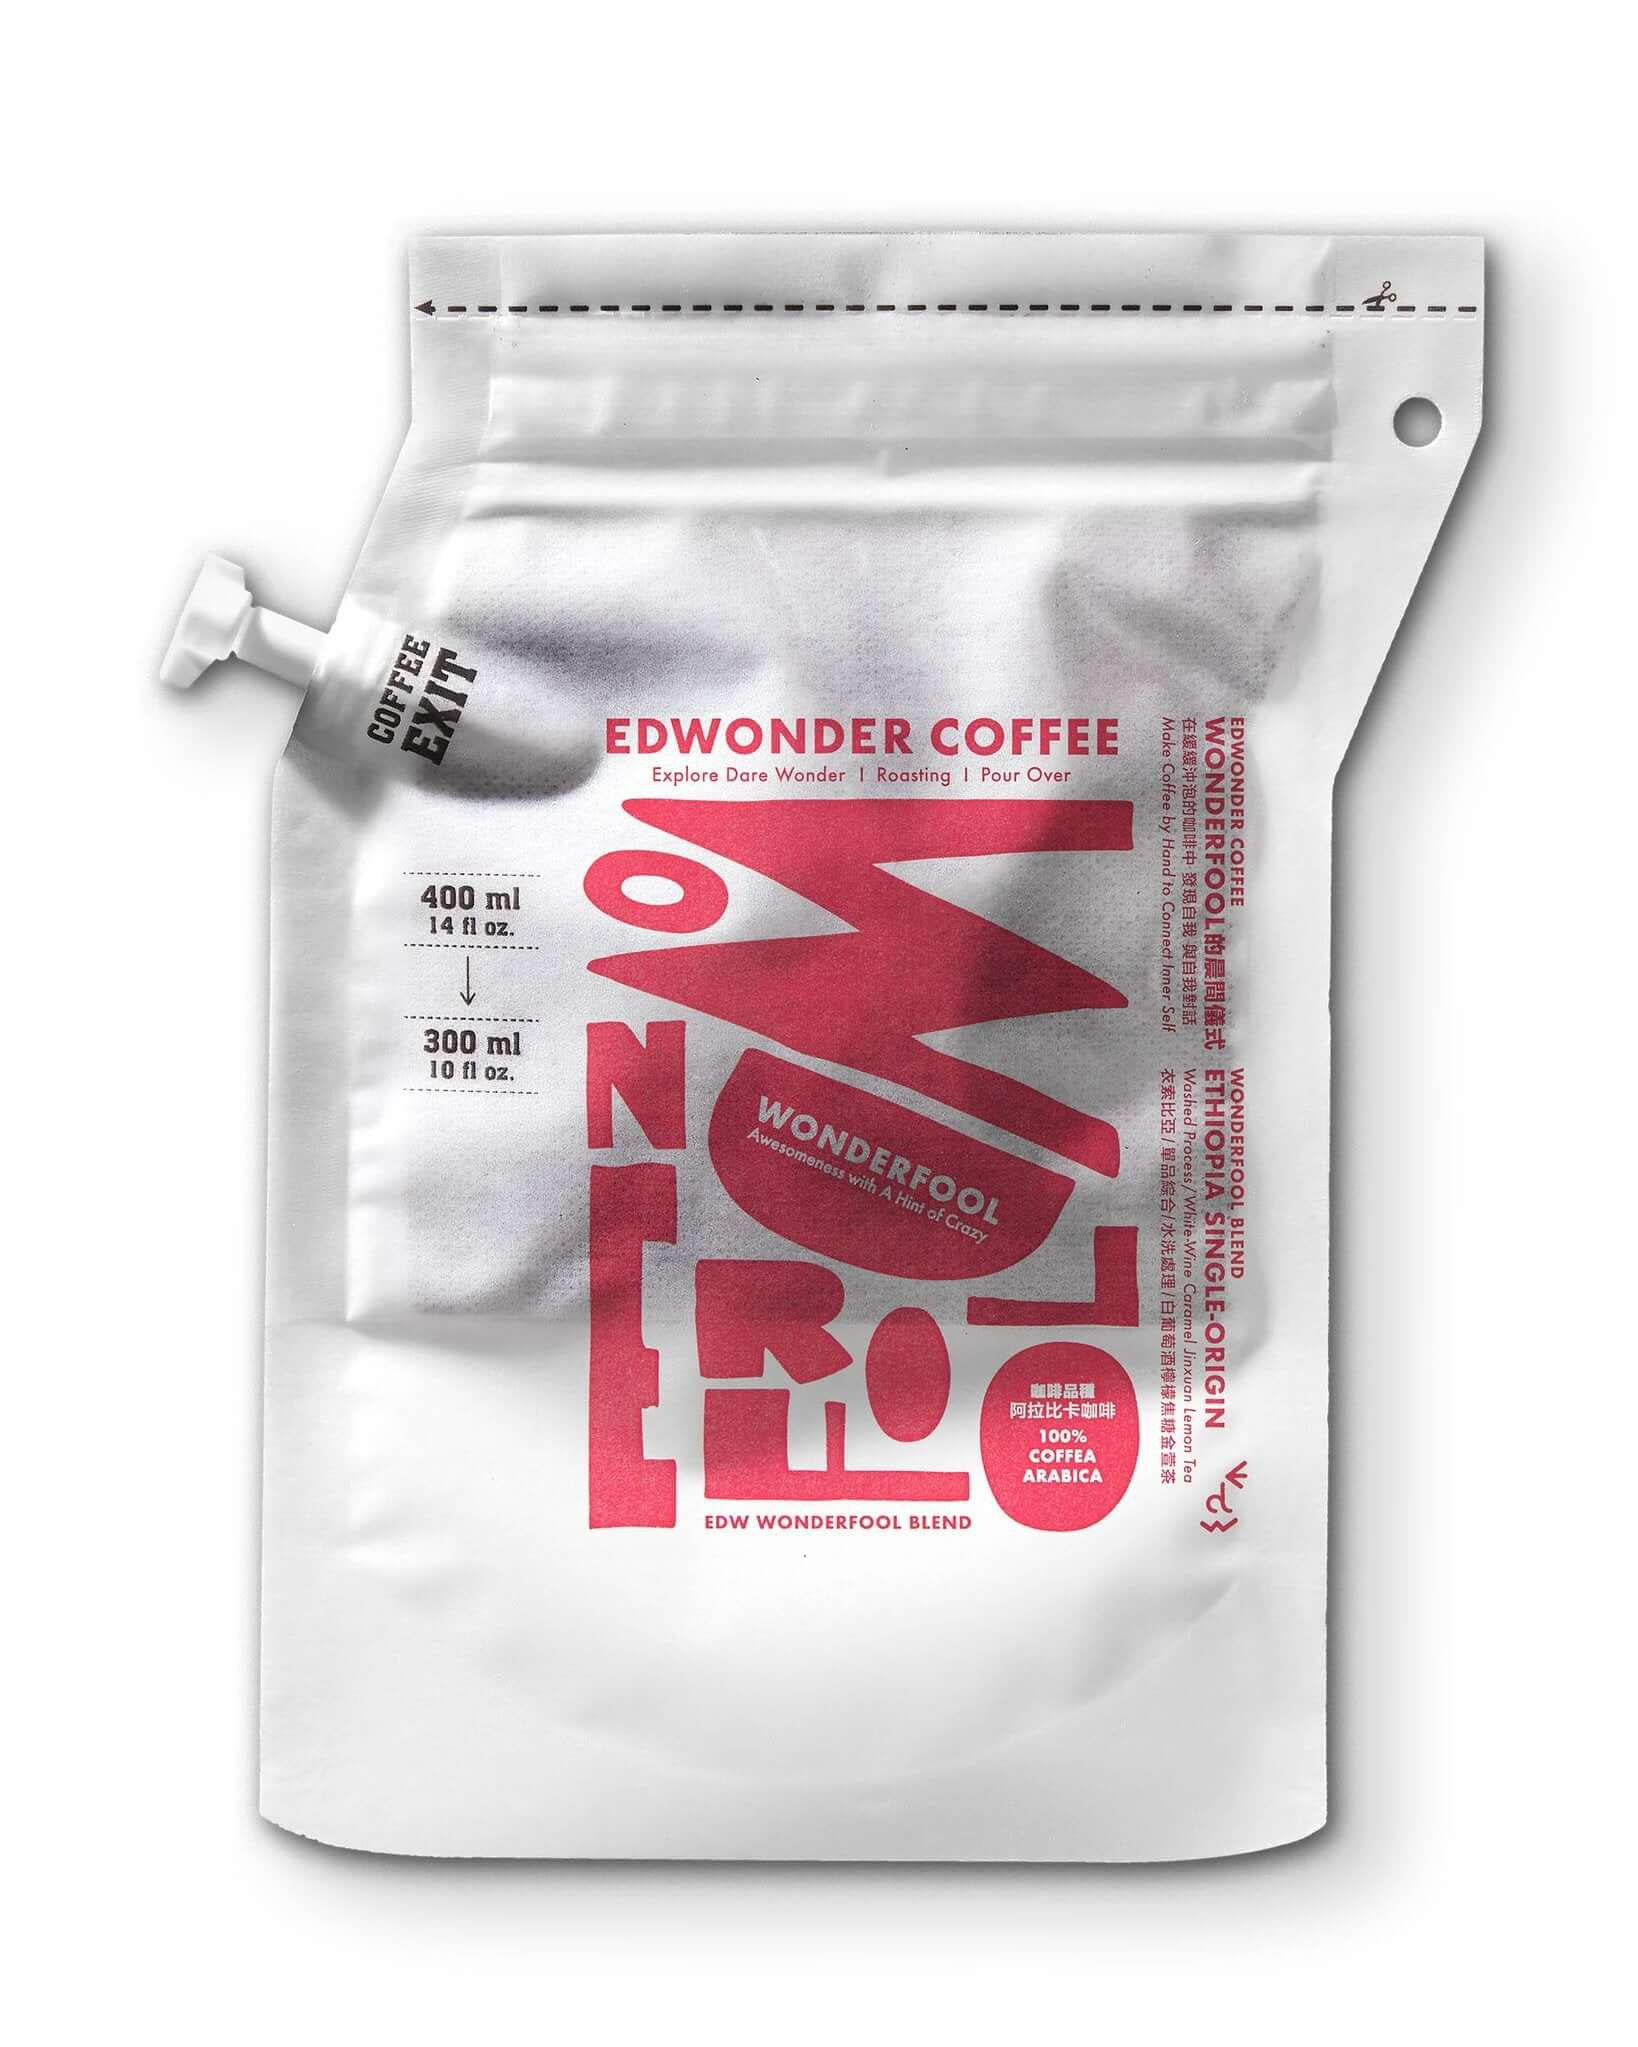 EdWonder Coffee_Travel Drip Bag_30g (2 Servings)